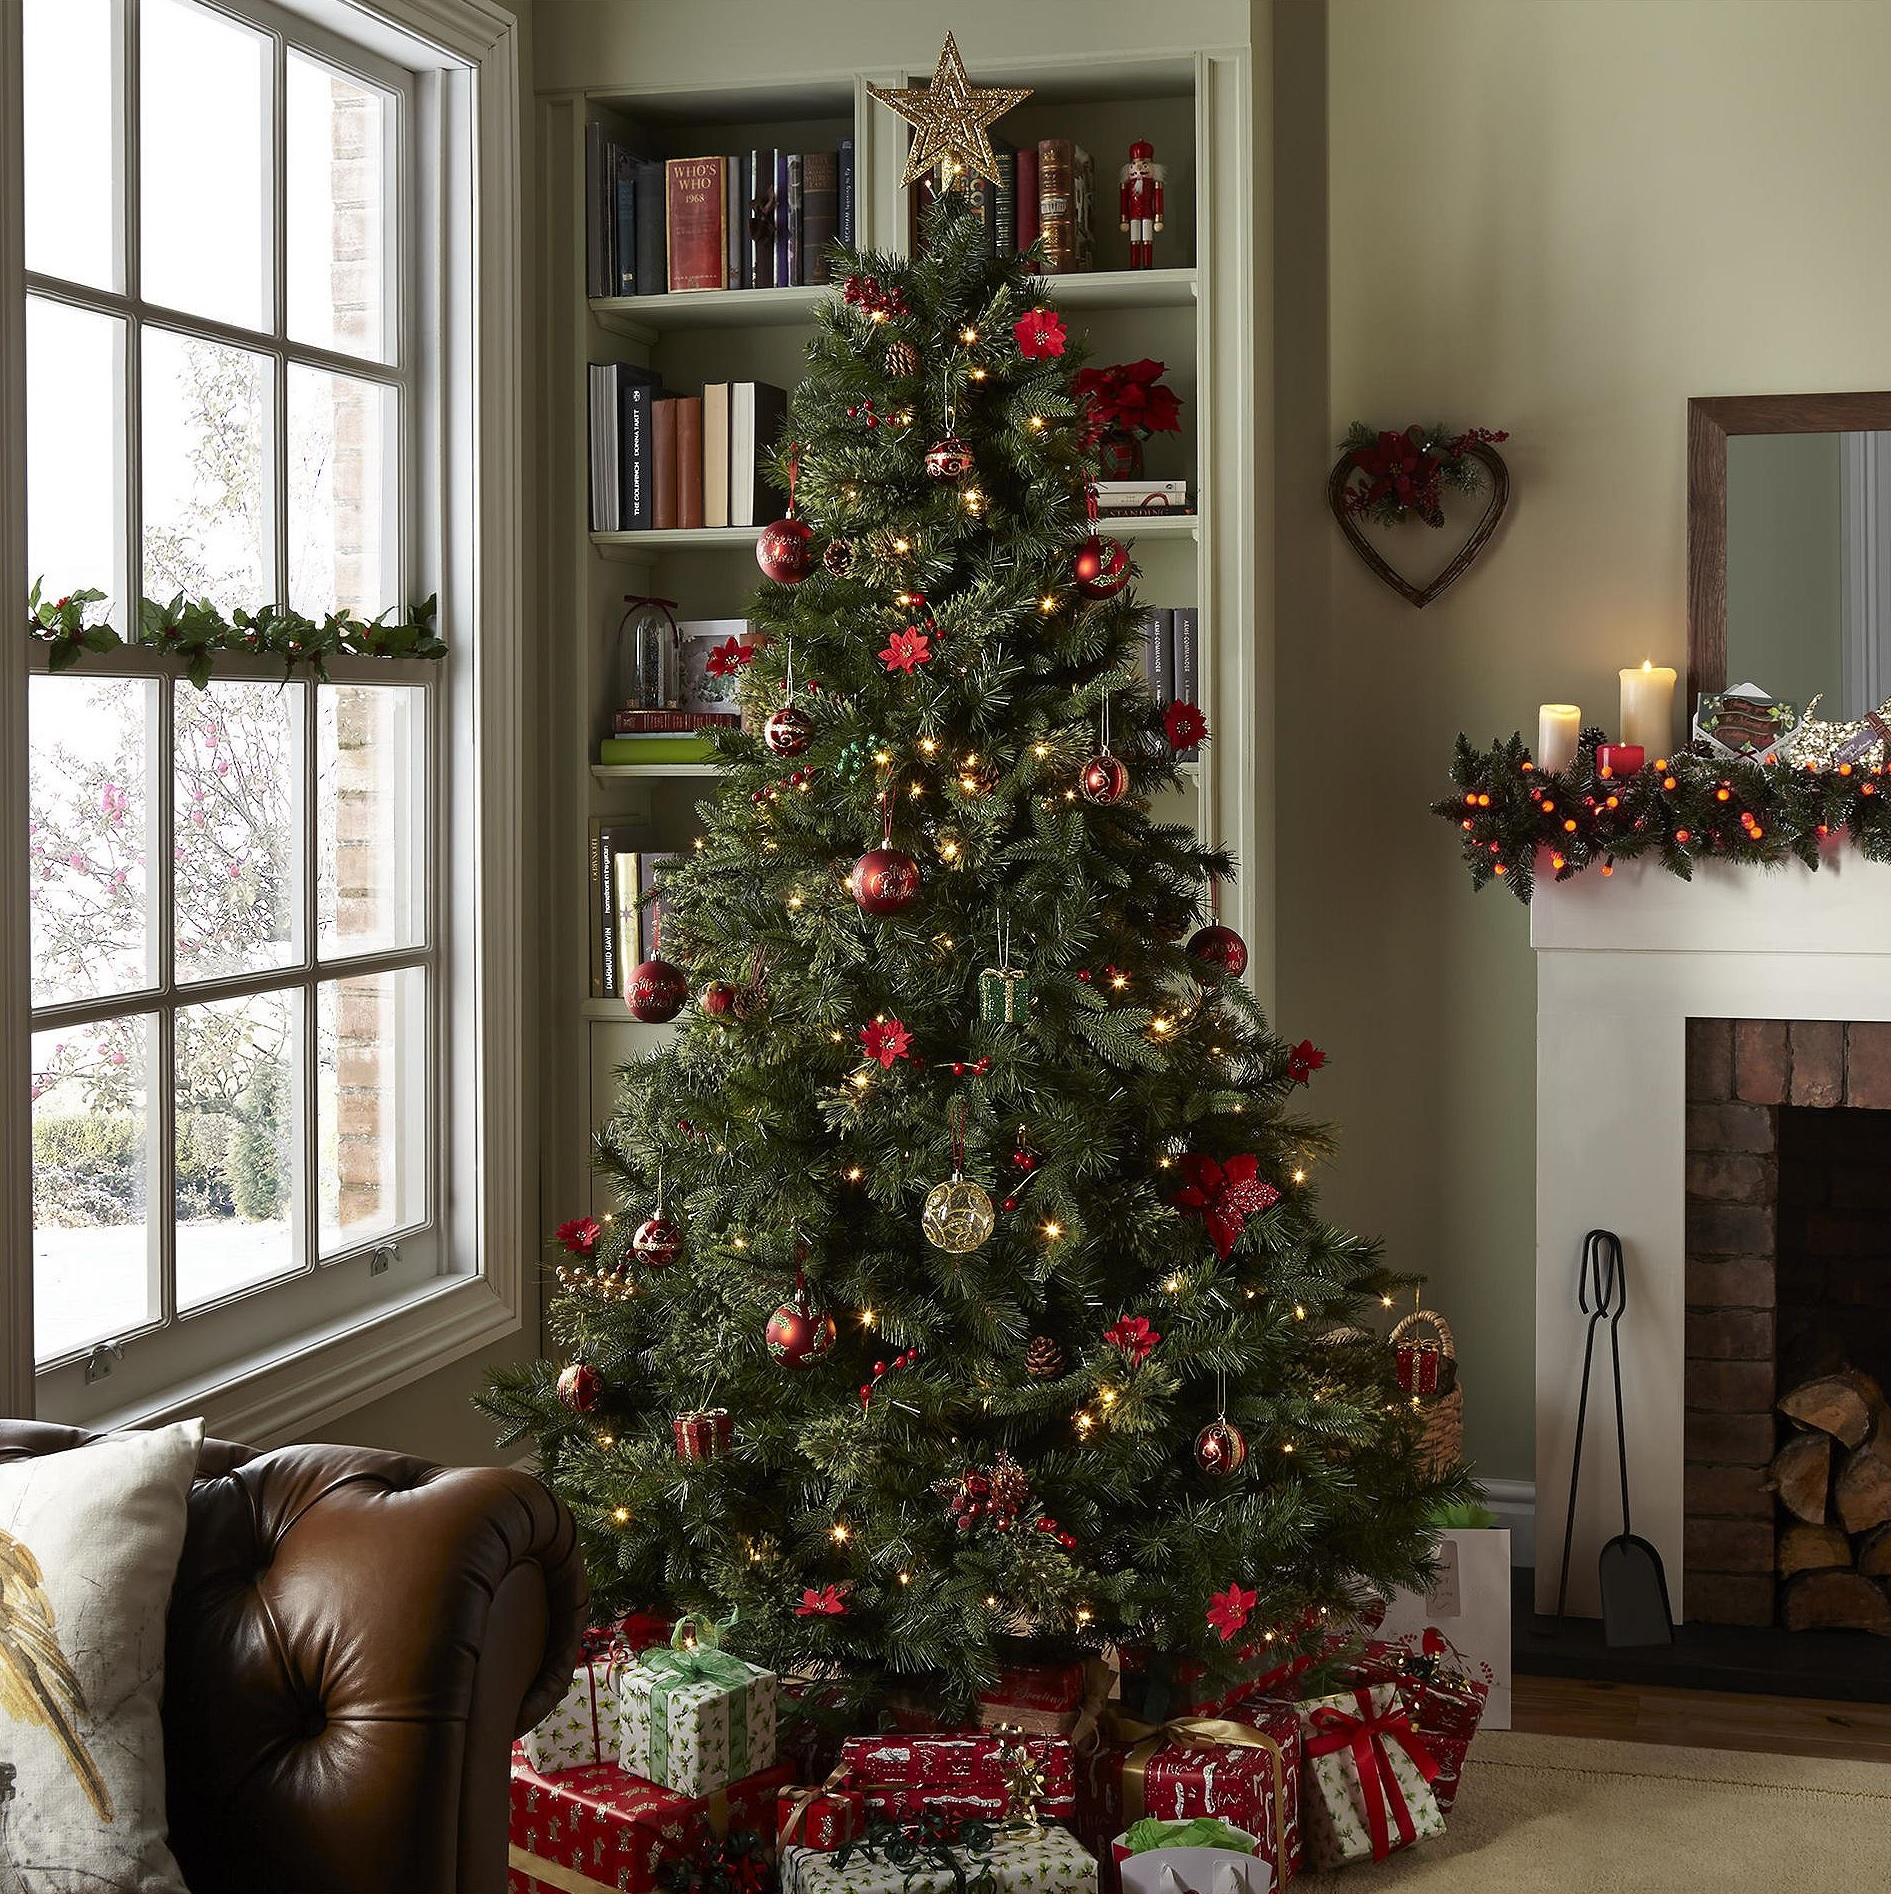 Luxurious Christmas Trees: NEW Tesco 7ft Luxury Regency Fir Christmas Tree - Green